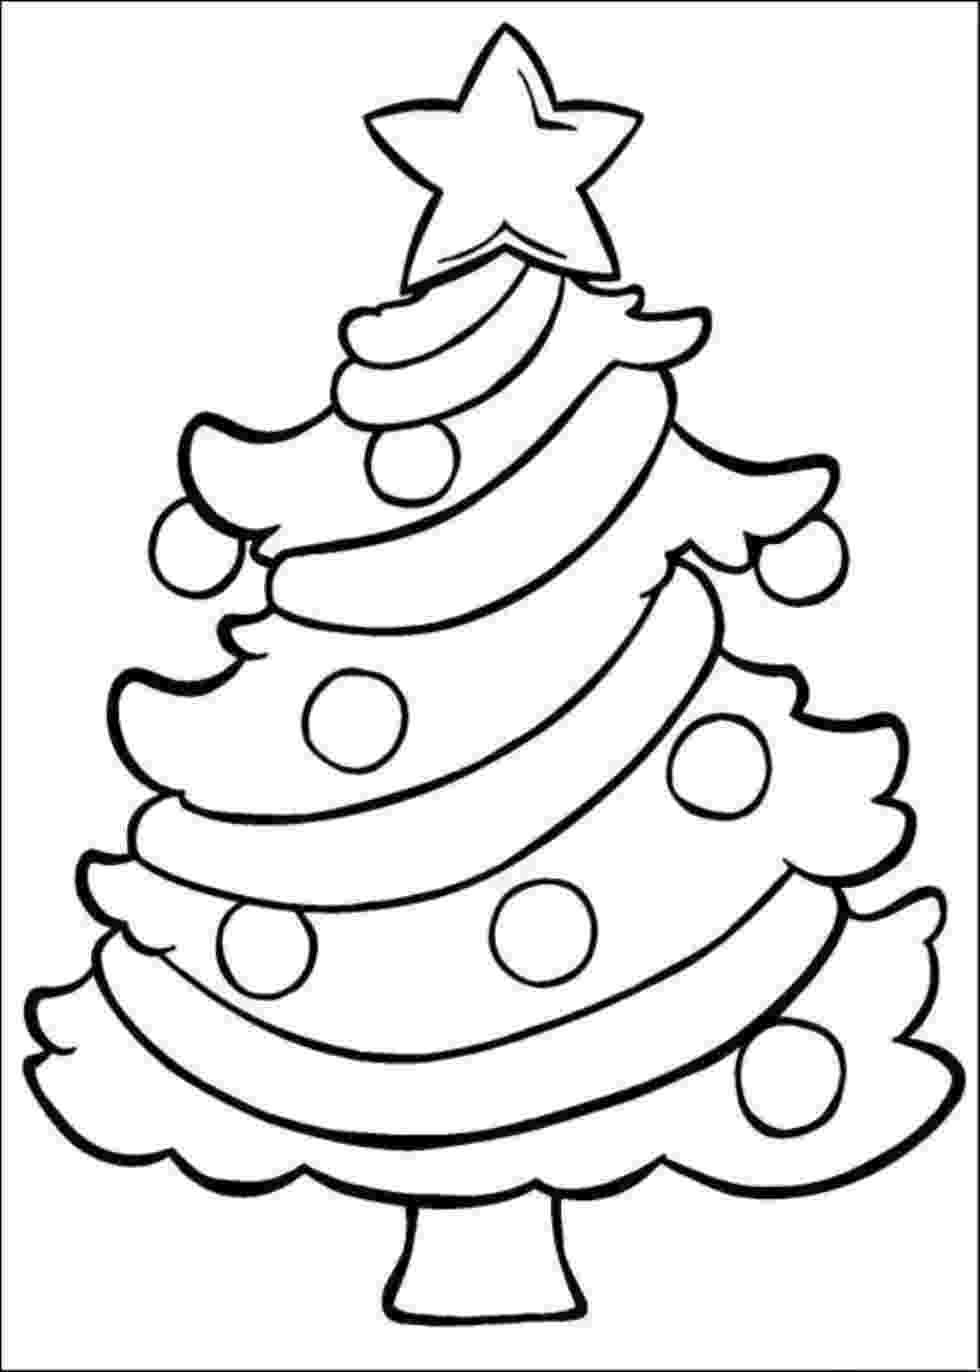 colouring pages about christmas free printable christmas tree coloring pages for kids christmas about pages colouring